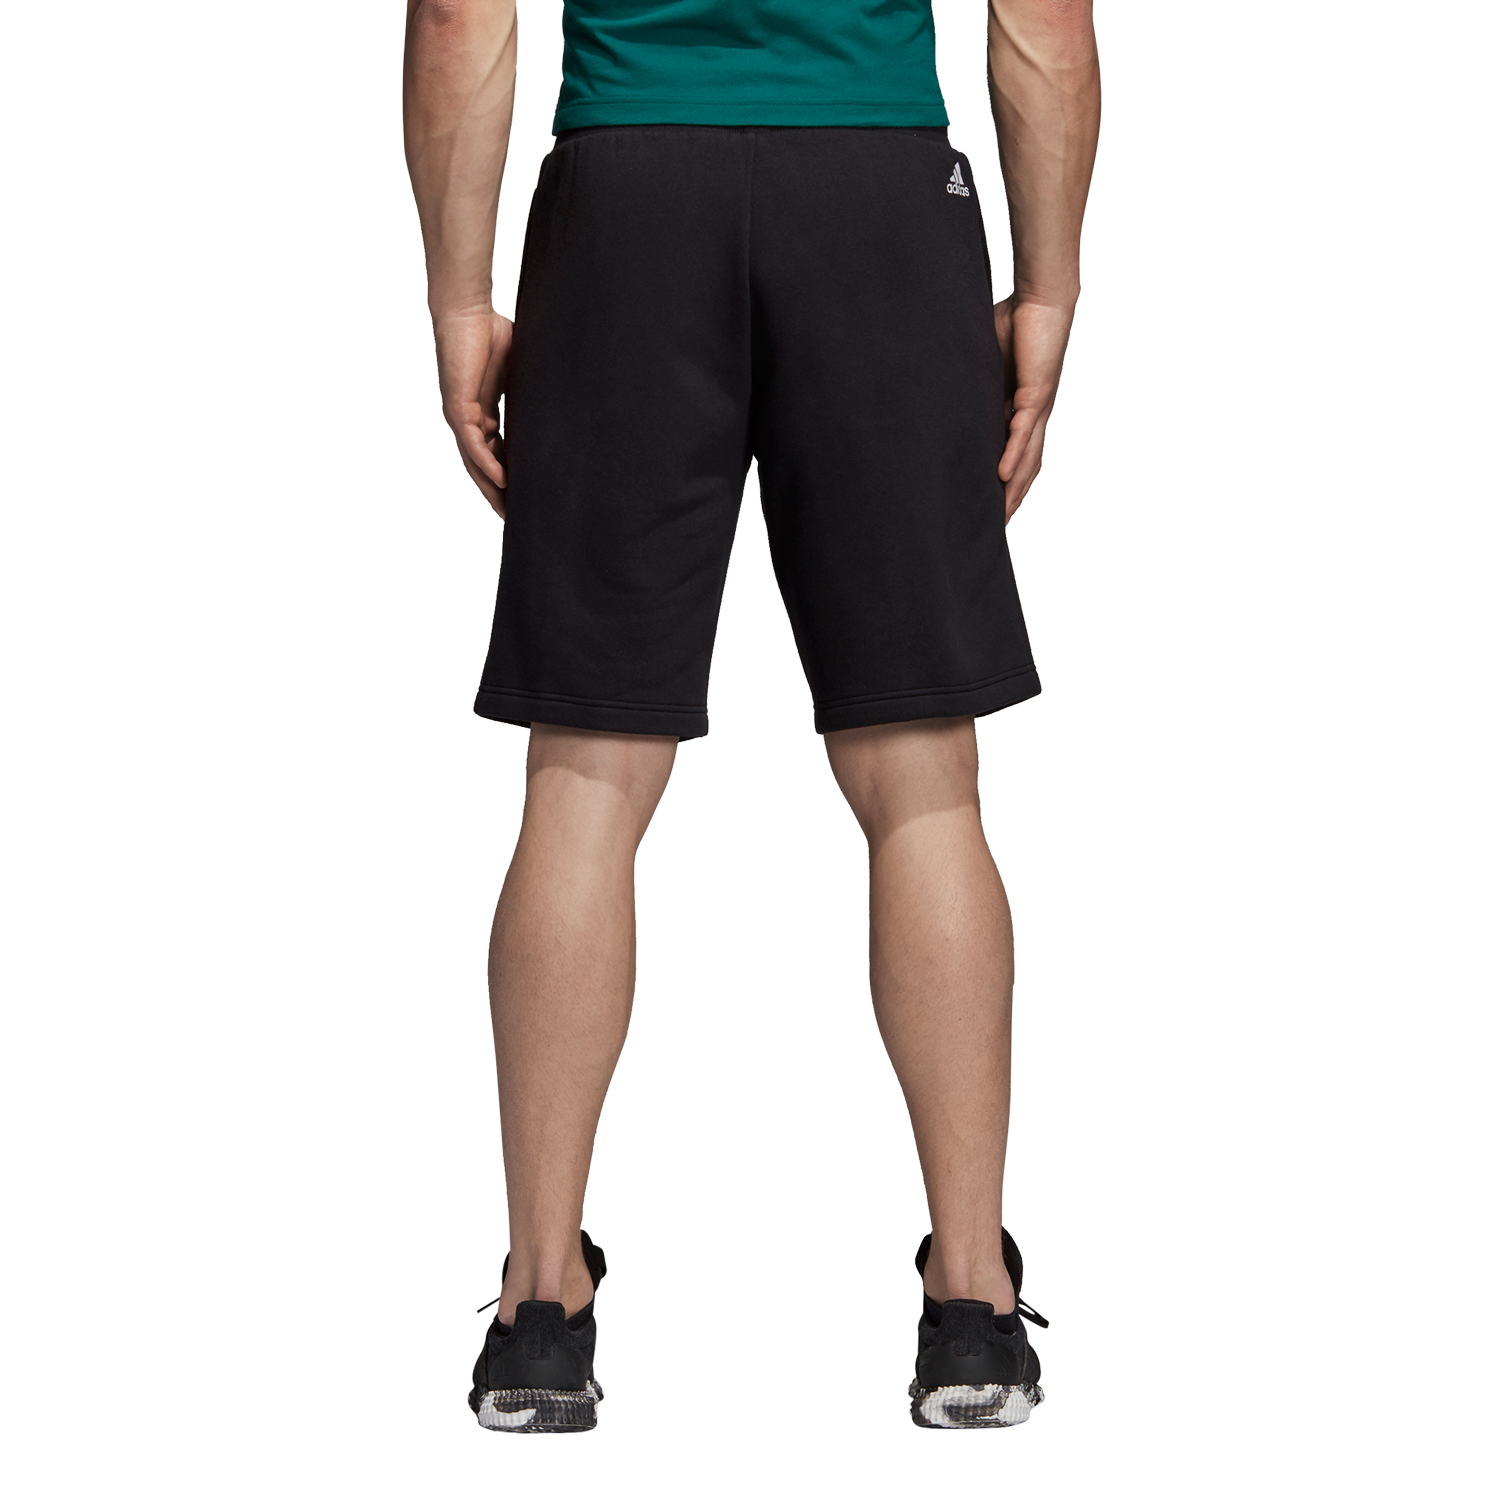 Adidas Essentials Herren Trainingsshort – Bild 4